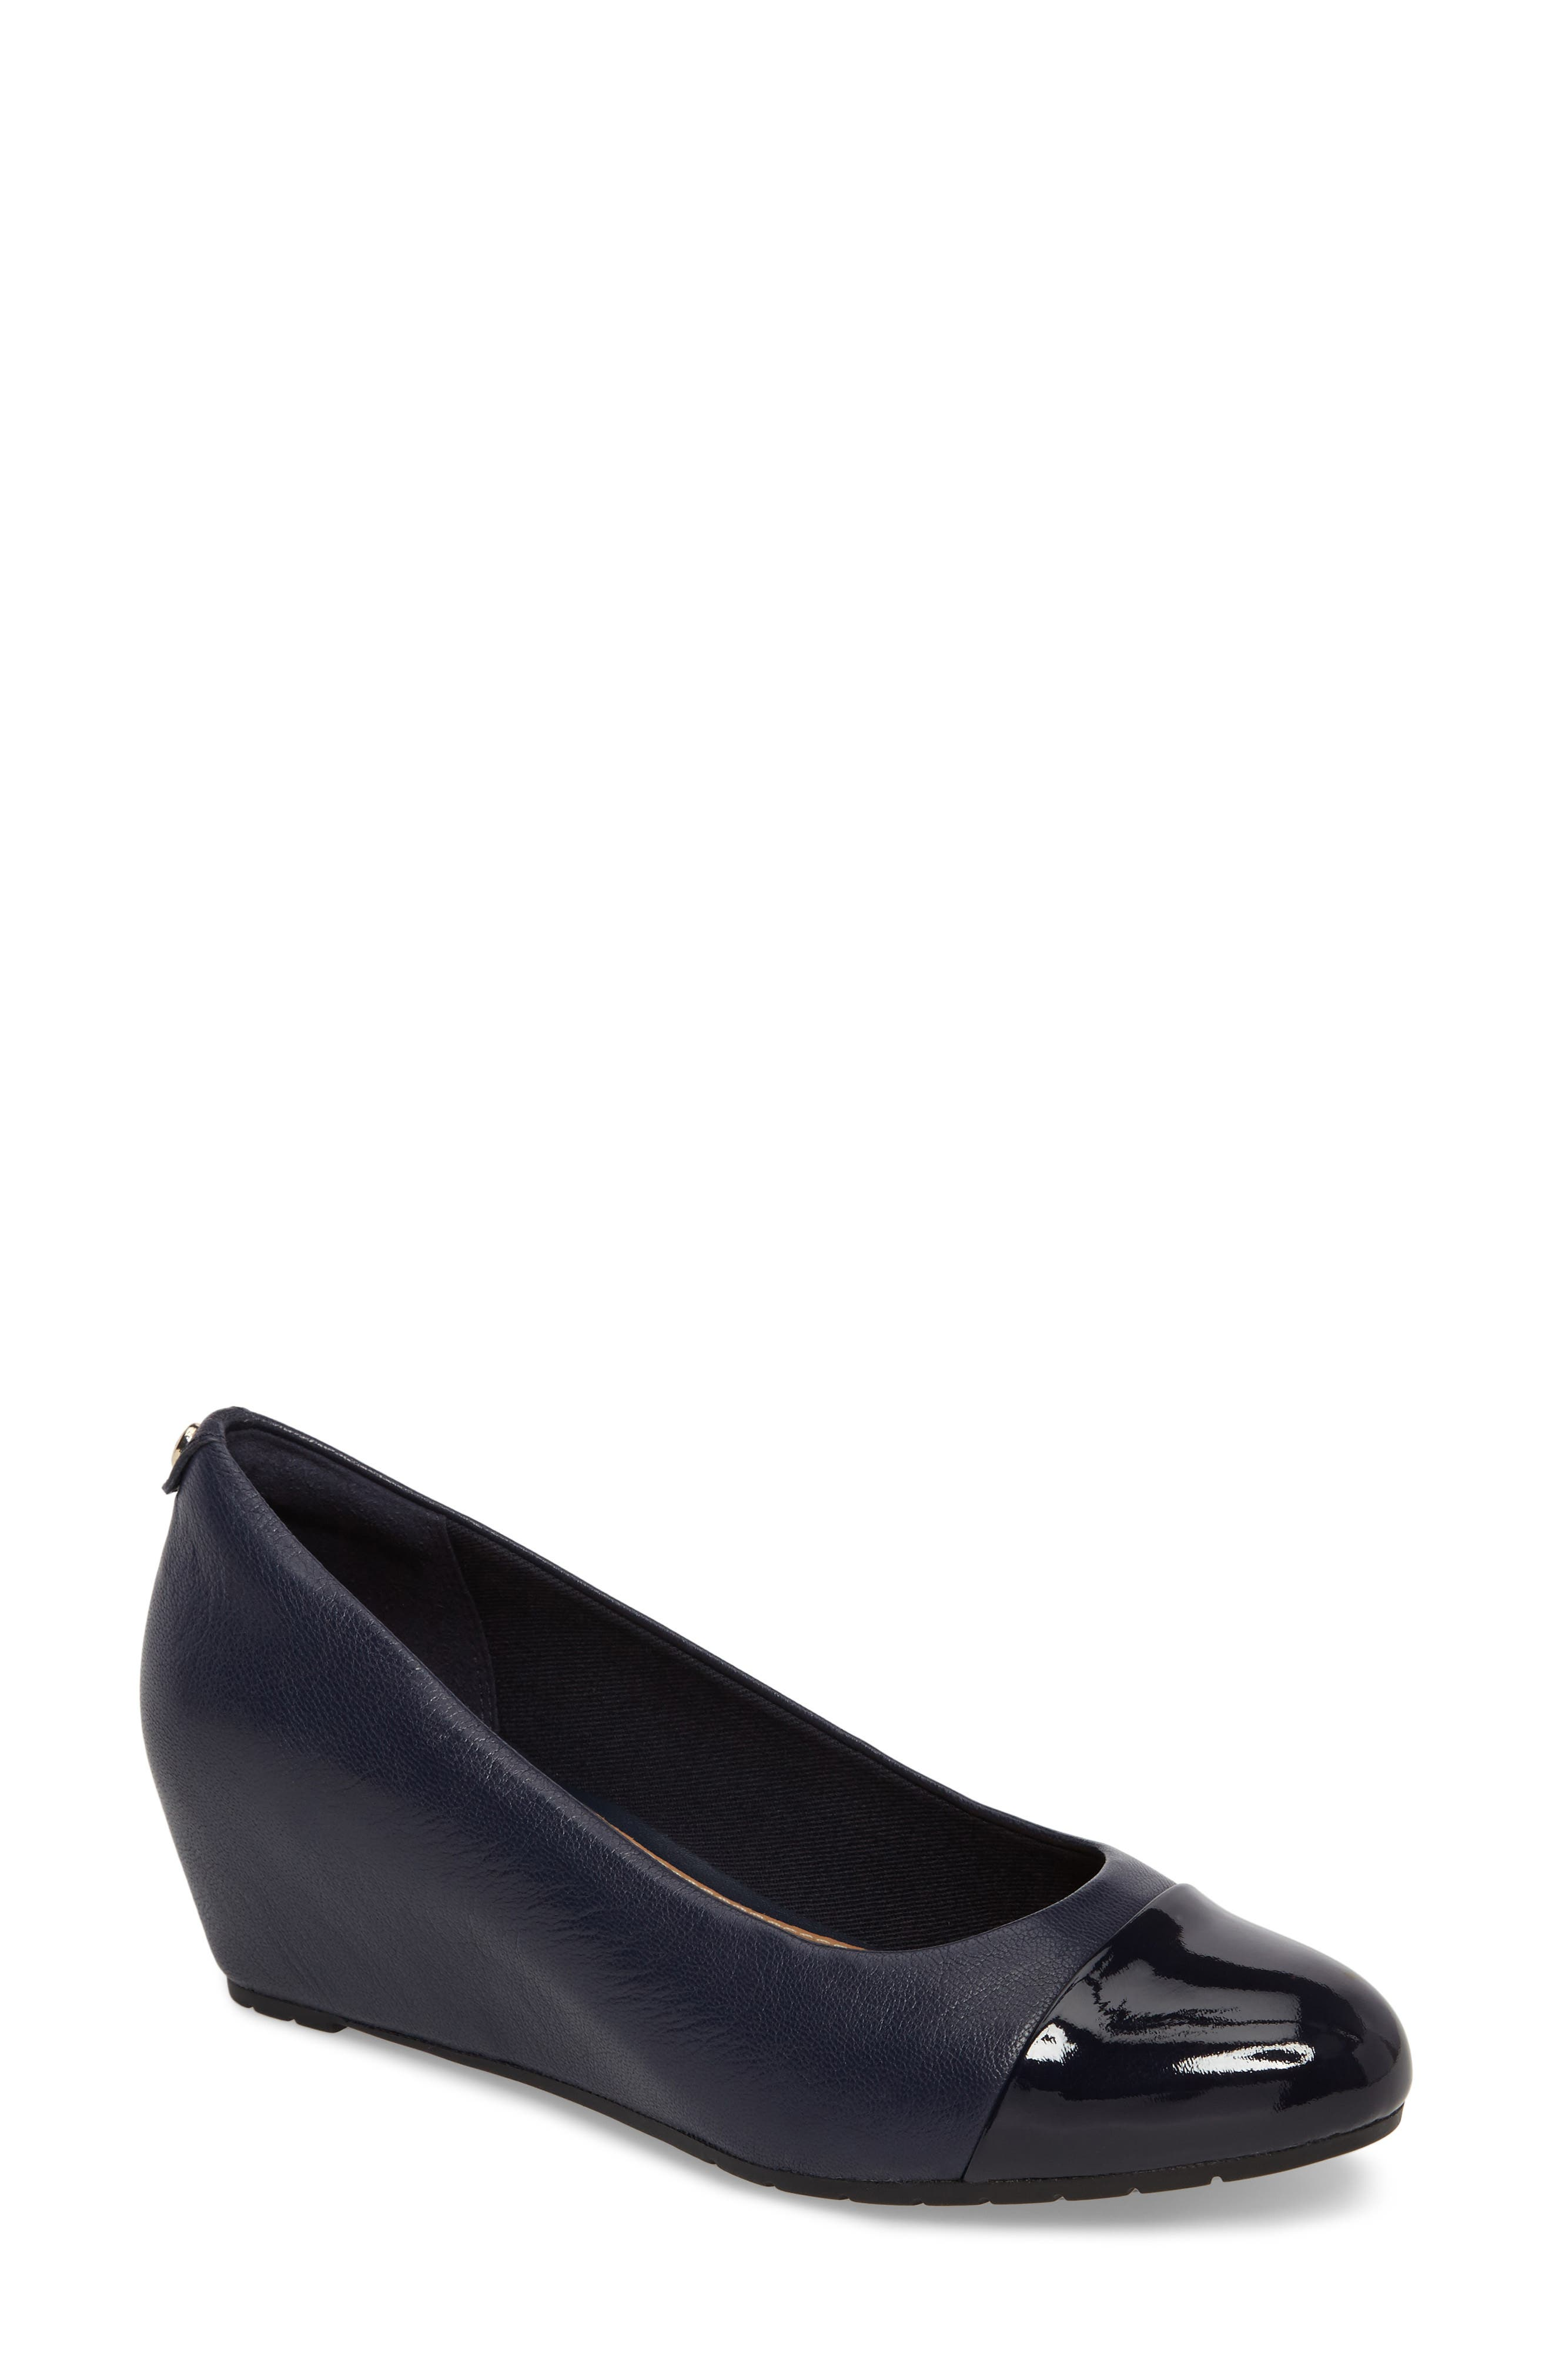 Vendra Dune Wedge Pump,                         Main,                         color, Navy Leather